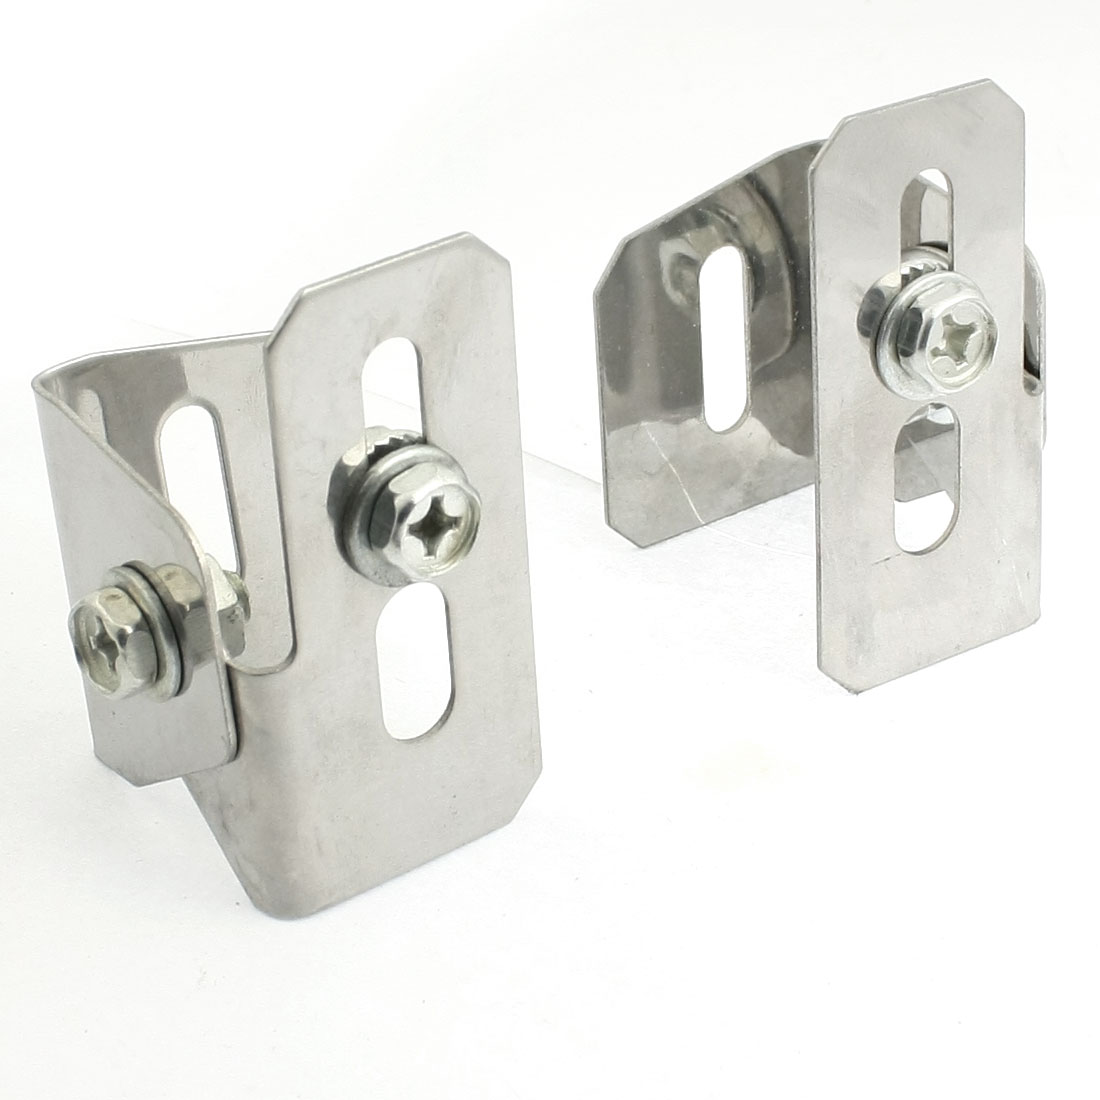 2 Pcs Silver Tone License Fix Bracket Holders for Auto Vehicle